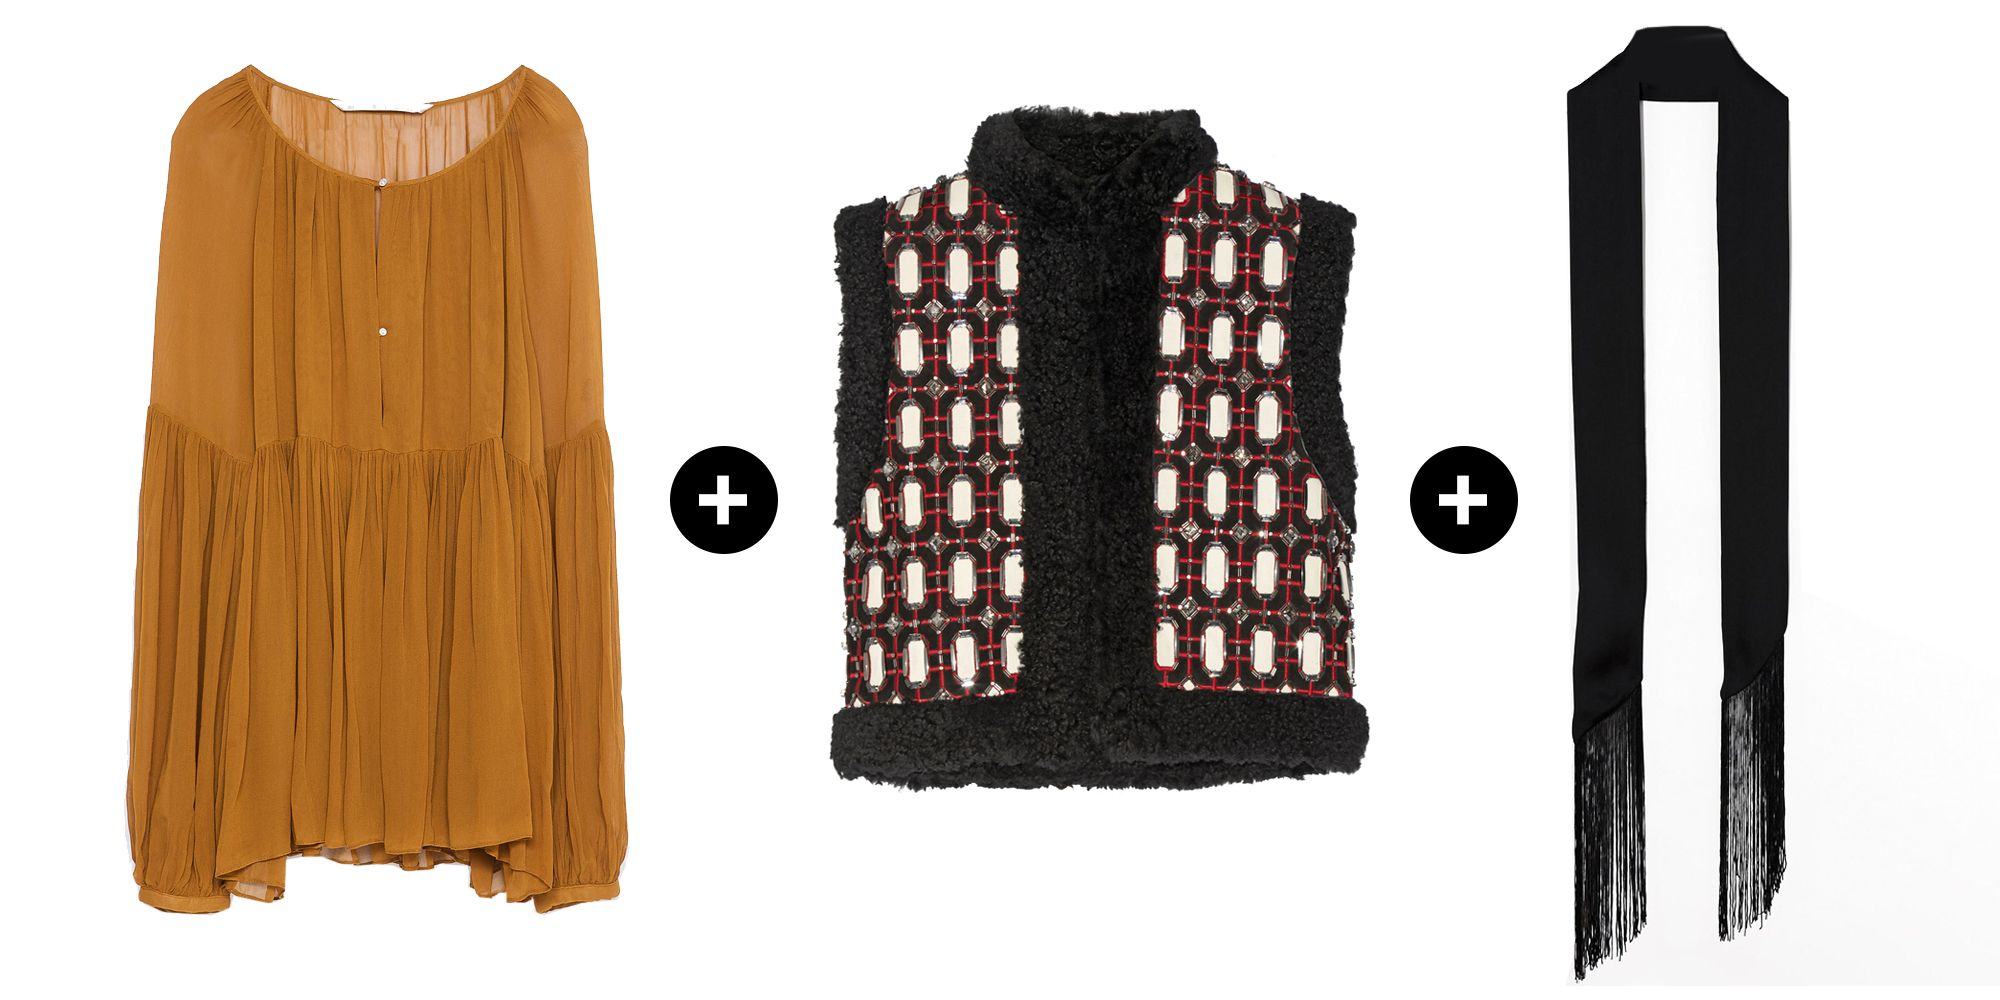 "<p>Top that airy blouse you wore all summer long with a heavy shearling vest and add our favorite new accessory: the skinny scarf. </p><p>Zara Voluminous Shirt, $40&#x3B; <a href=""http://www.zara.com/us/en/woman/tops/blouses/voluminous-shirt-c763513p2810590.html"" target=""_blank""><u>zara.com</u></a><br></p><p>Gucci Embellished Shearling-Trimmed Suede Gilet, $5,700&#x3B; <a href=""http://www.net-a-porter.com/us/en/product/570825"" target=""_blank""><u>net-a-porter.com</u></a></p><p>ASOS Long Skinny Scarf, $15&#x3B; <a href=""http://us.asos.com/asos/asos-long-skinny-scarf-in-black-with-fringing/prod/pgeproduct.aspx?iid=5078448&clr=Black&SearchQuery=skinny+scarf&pgesize=36&pge=0&totalstyles=57&gridsize=3&gridrow=2&gridcolumn=2"" target=""_blank""><u>us.asos.com</u></a></p>"